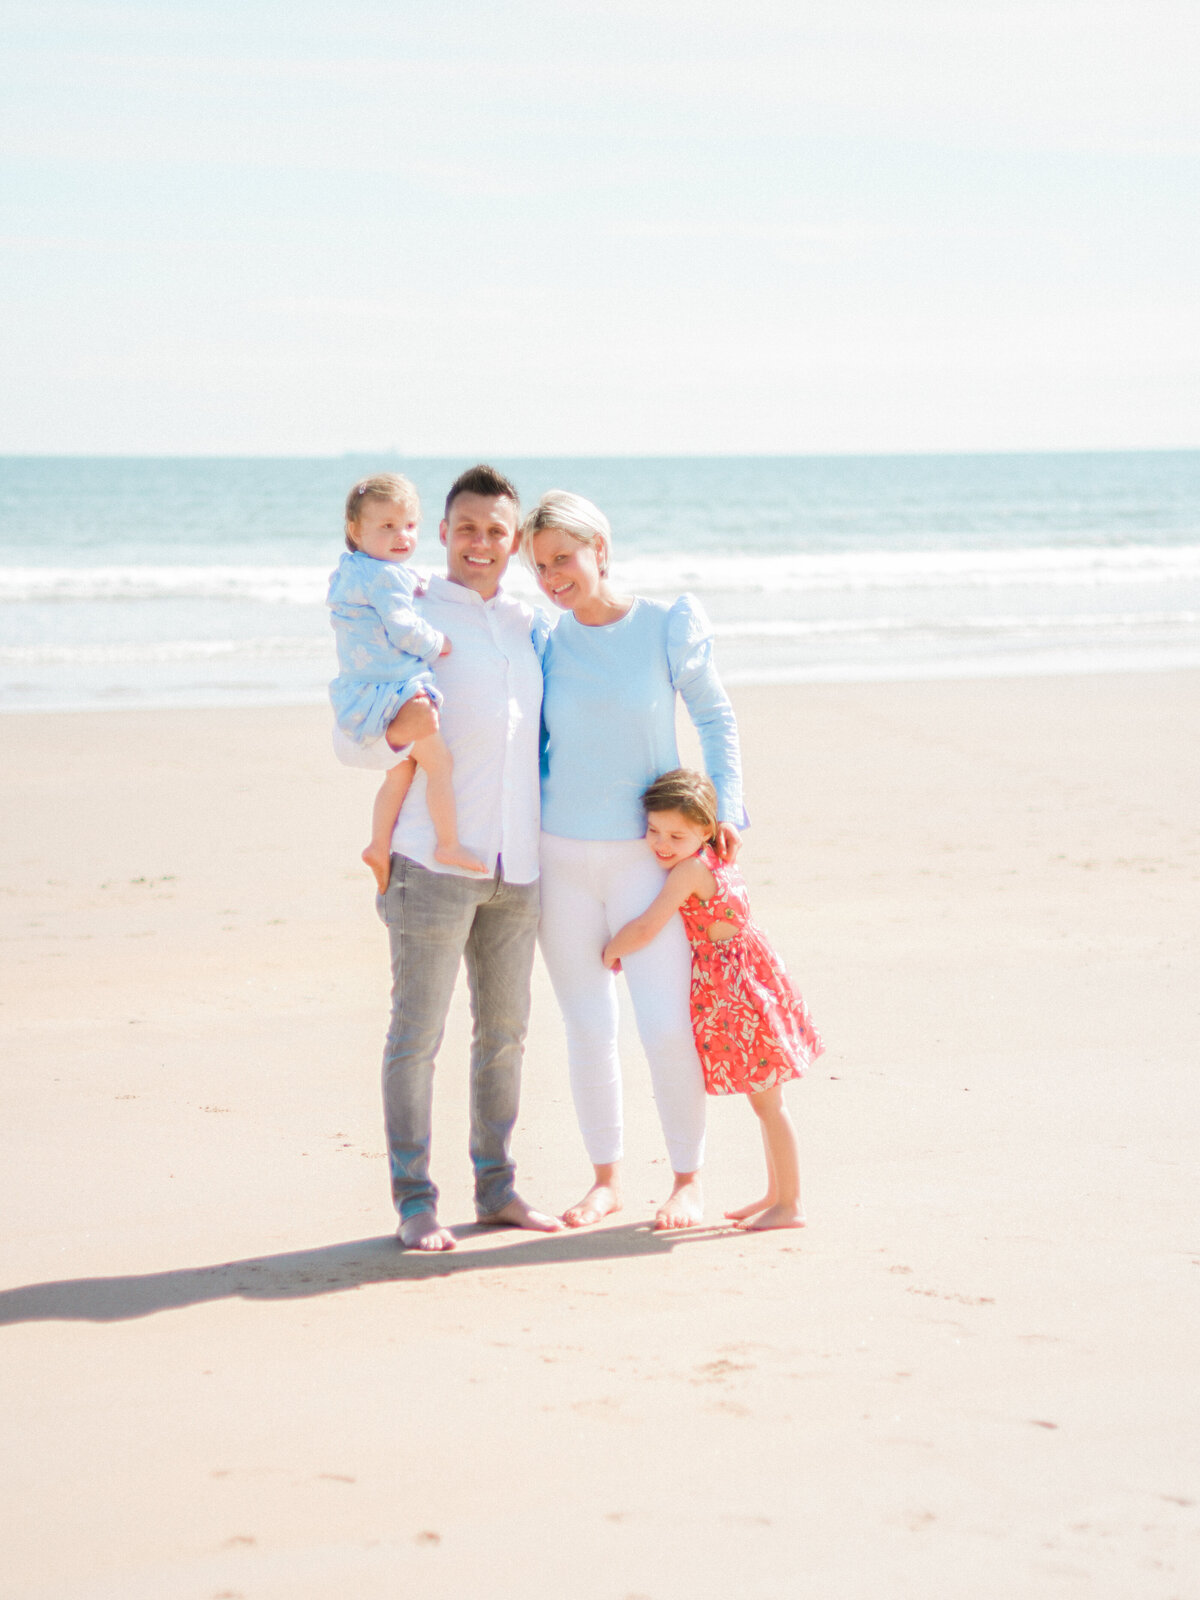 JacquelineAnnePhotography-Christie Family at Tyninghame -10